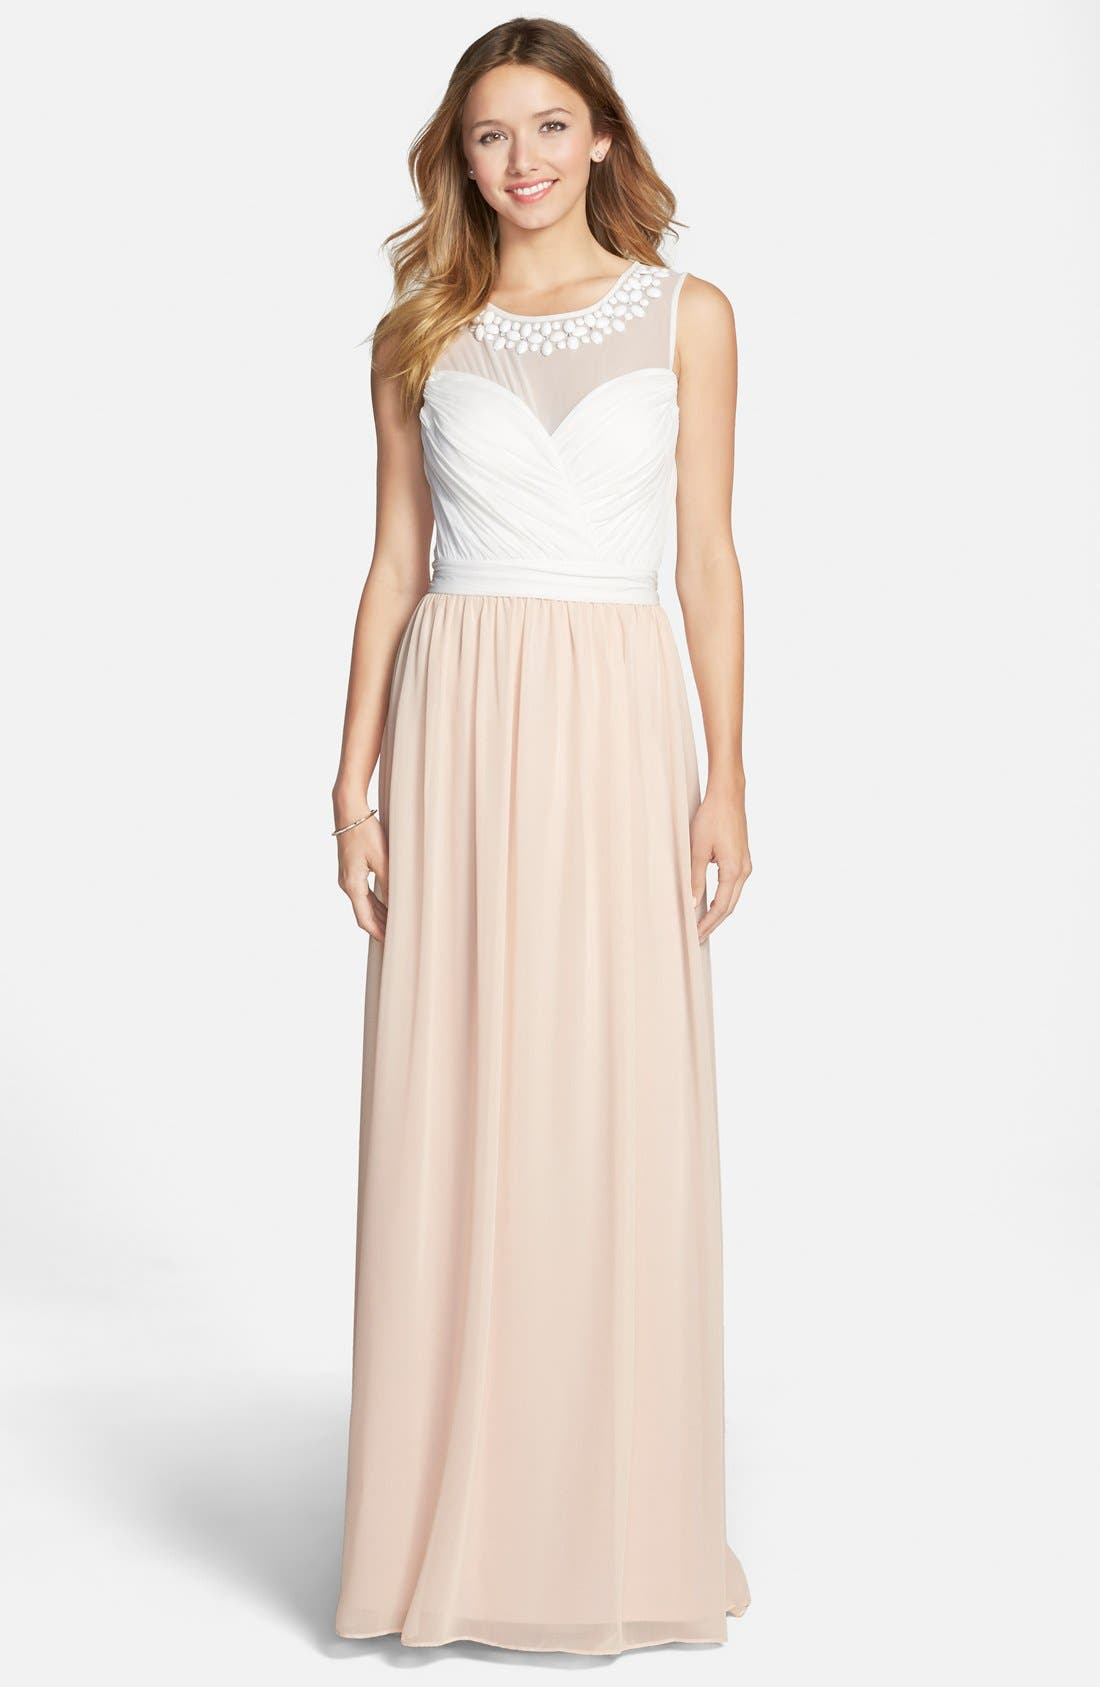 Alternate Image 1 Selected - Hailey by Adrianna Papell Embellished Two-Tone Chiffon Gown